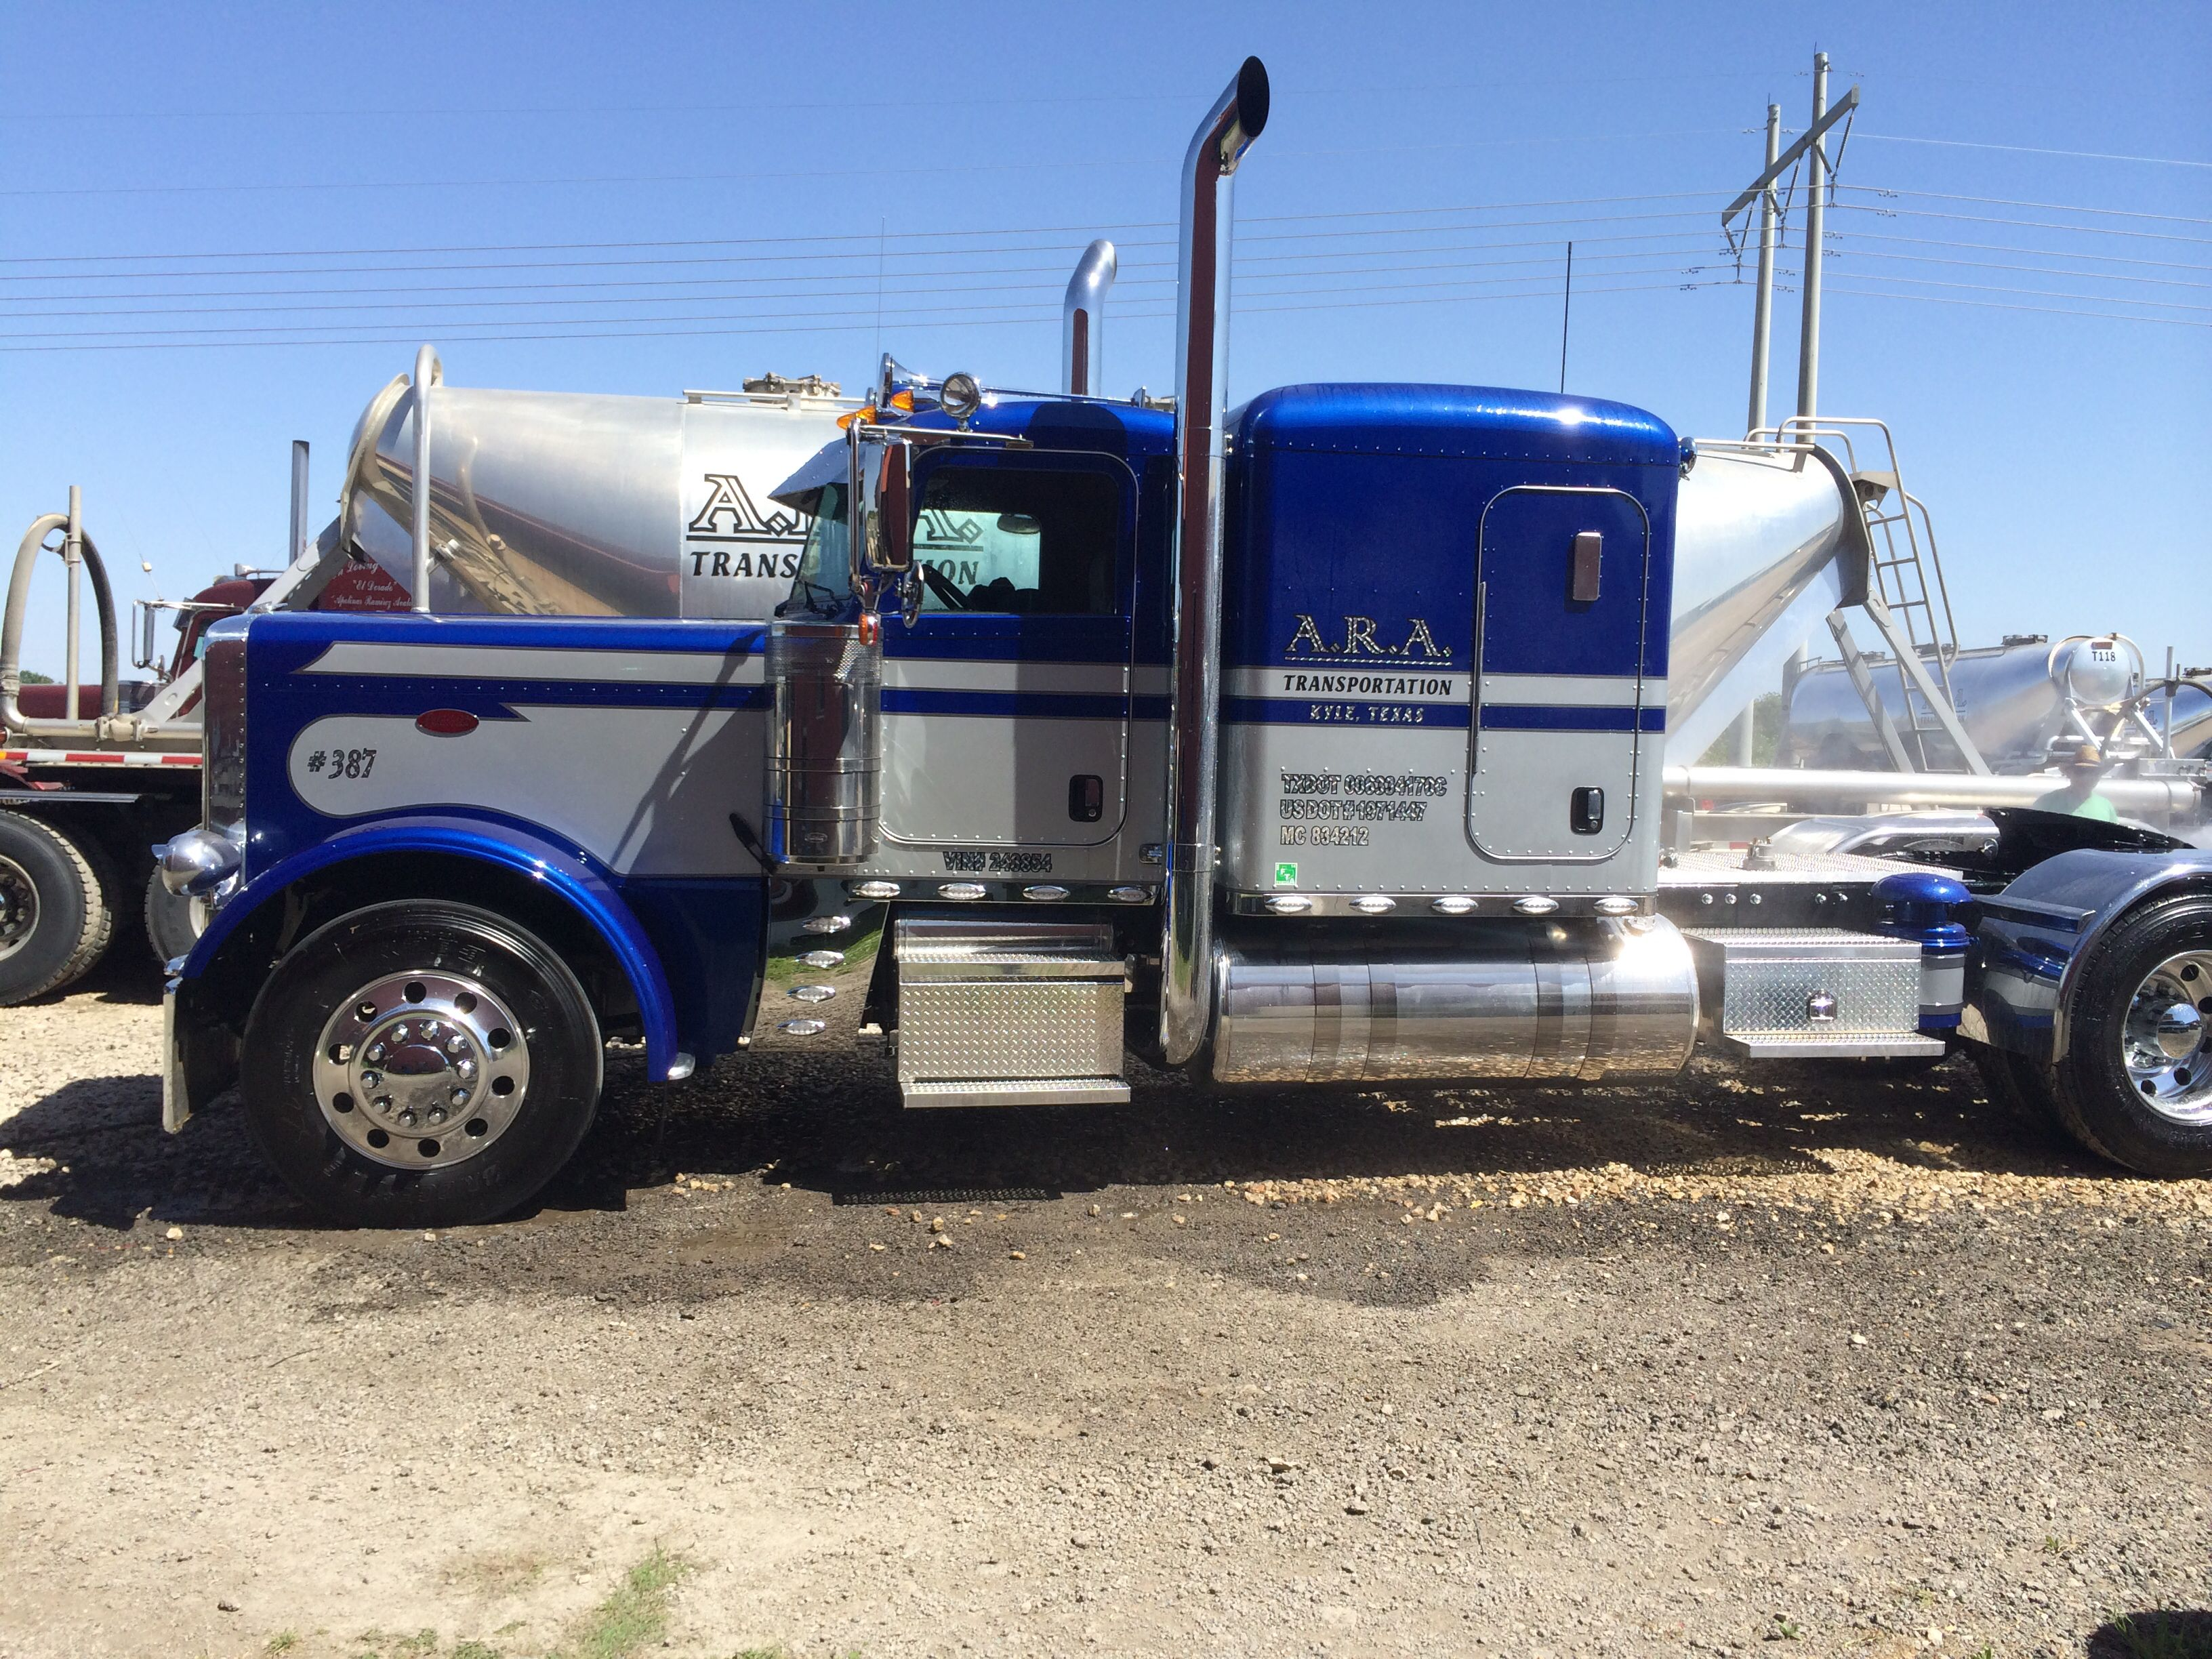 A r a transportation fitzgerald glider kit peterbilt ready for a bath